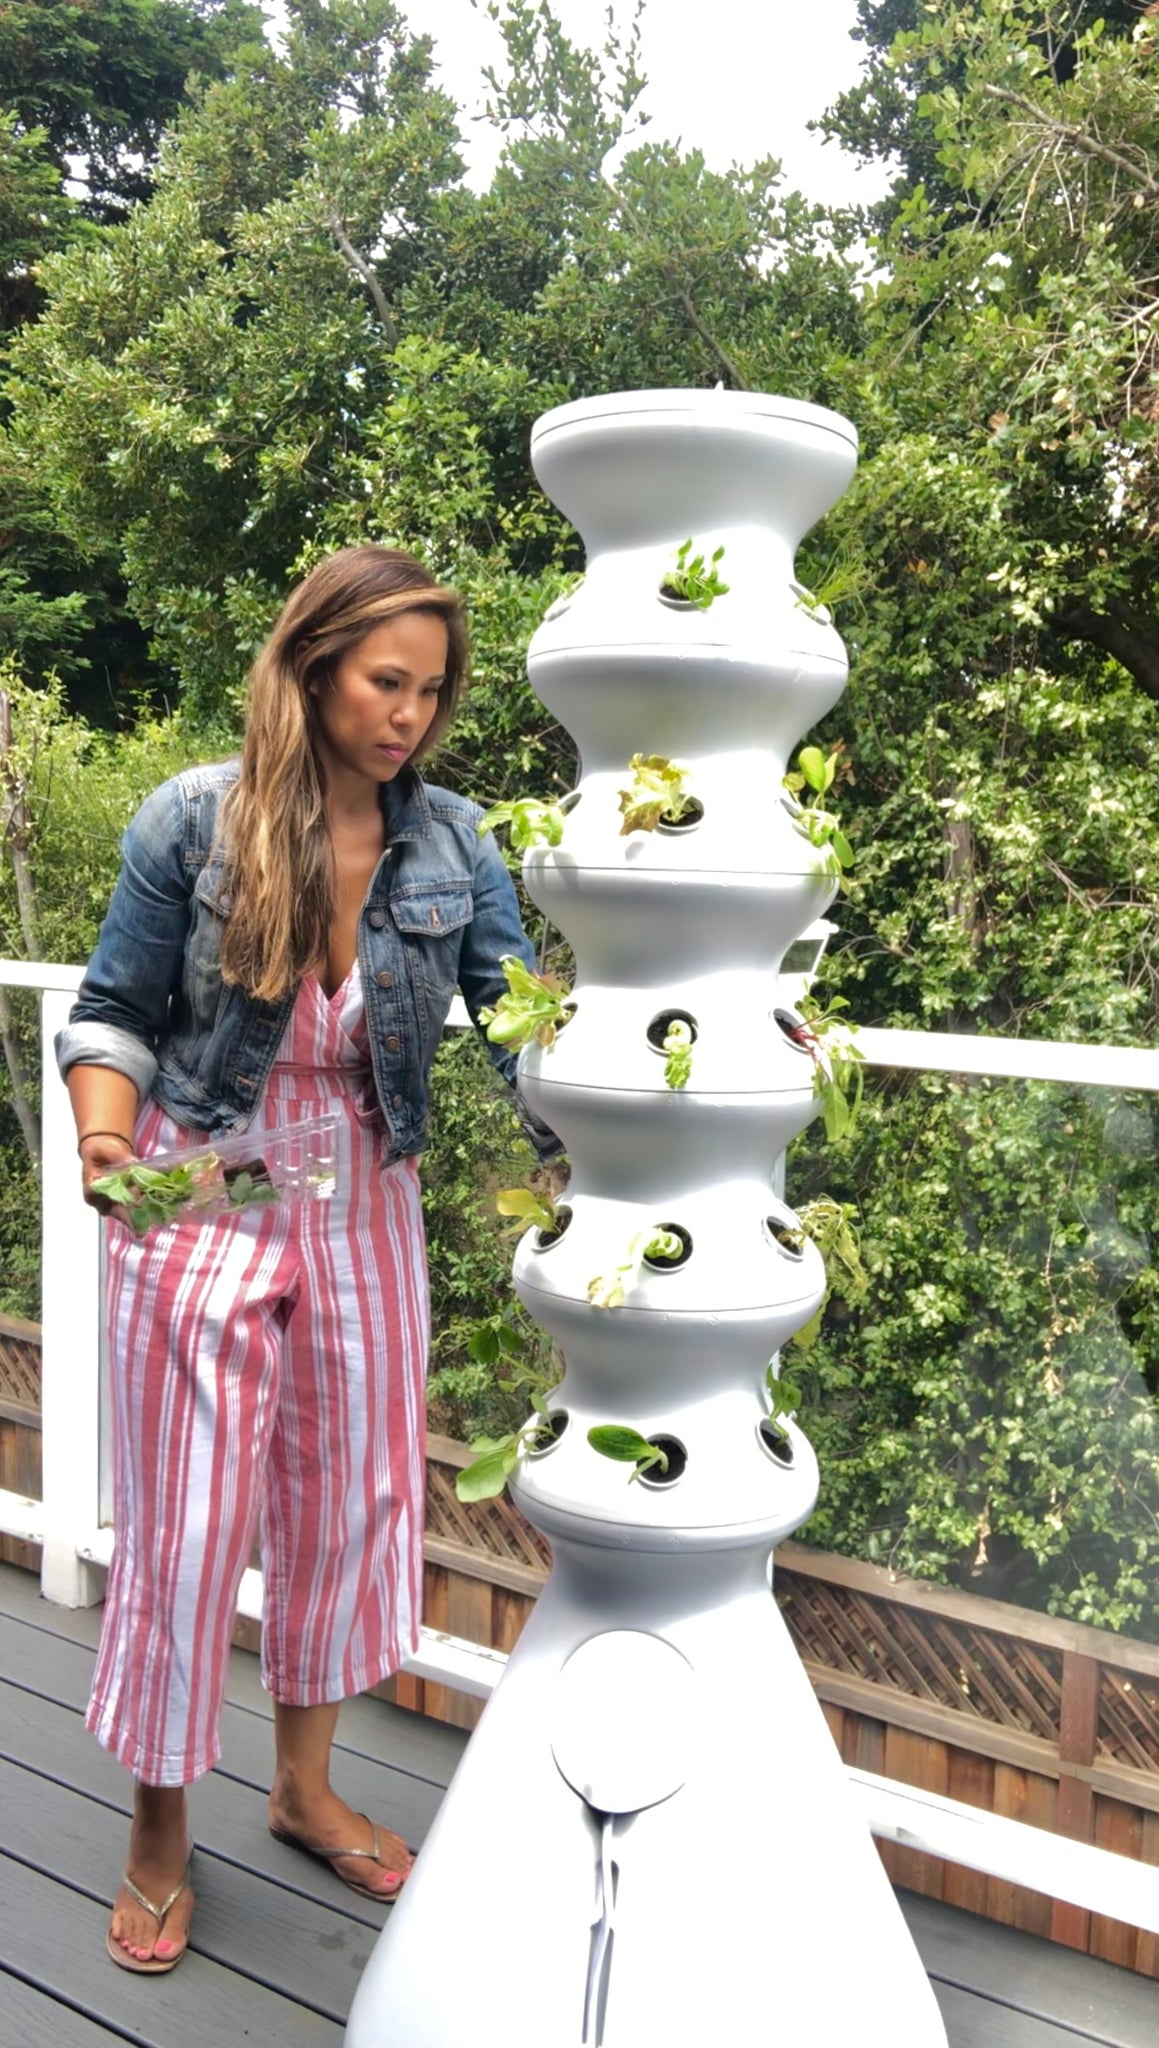 DIY Vertical Planter - Hydroponic Garden Farmstand - Lettuce Grow - Grow Your Own Food - Pretty Collected